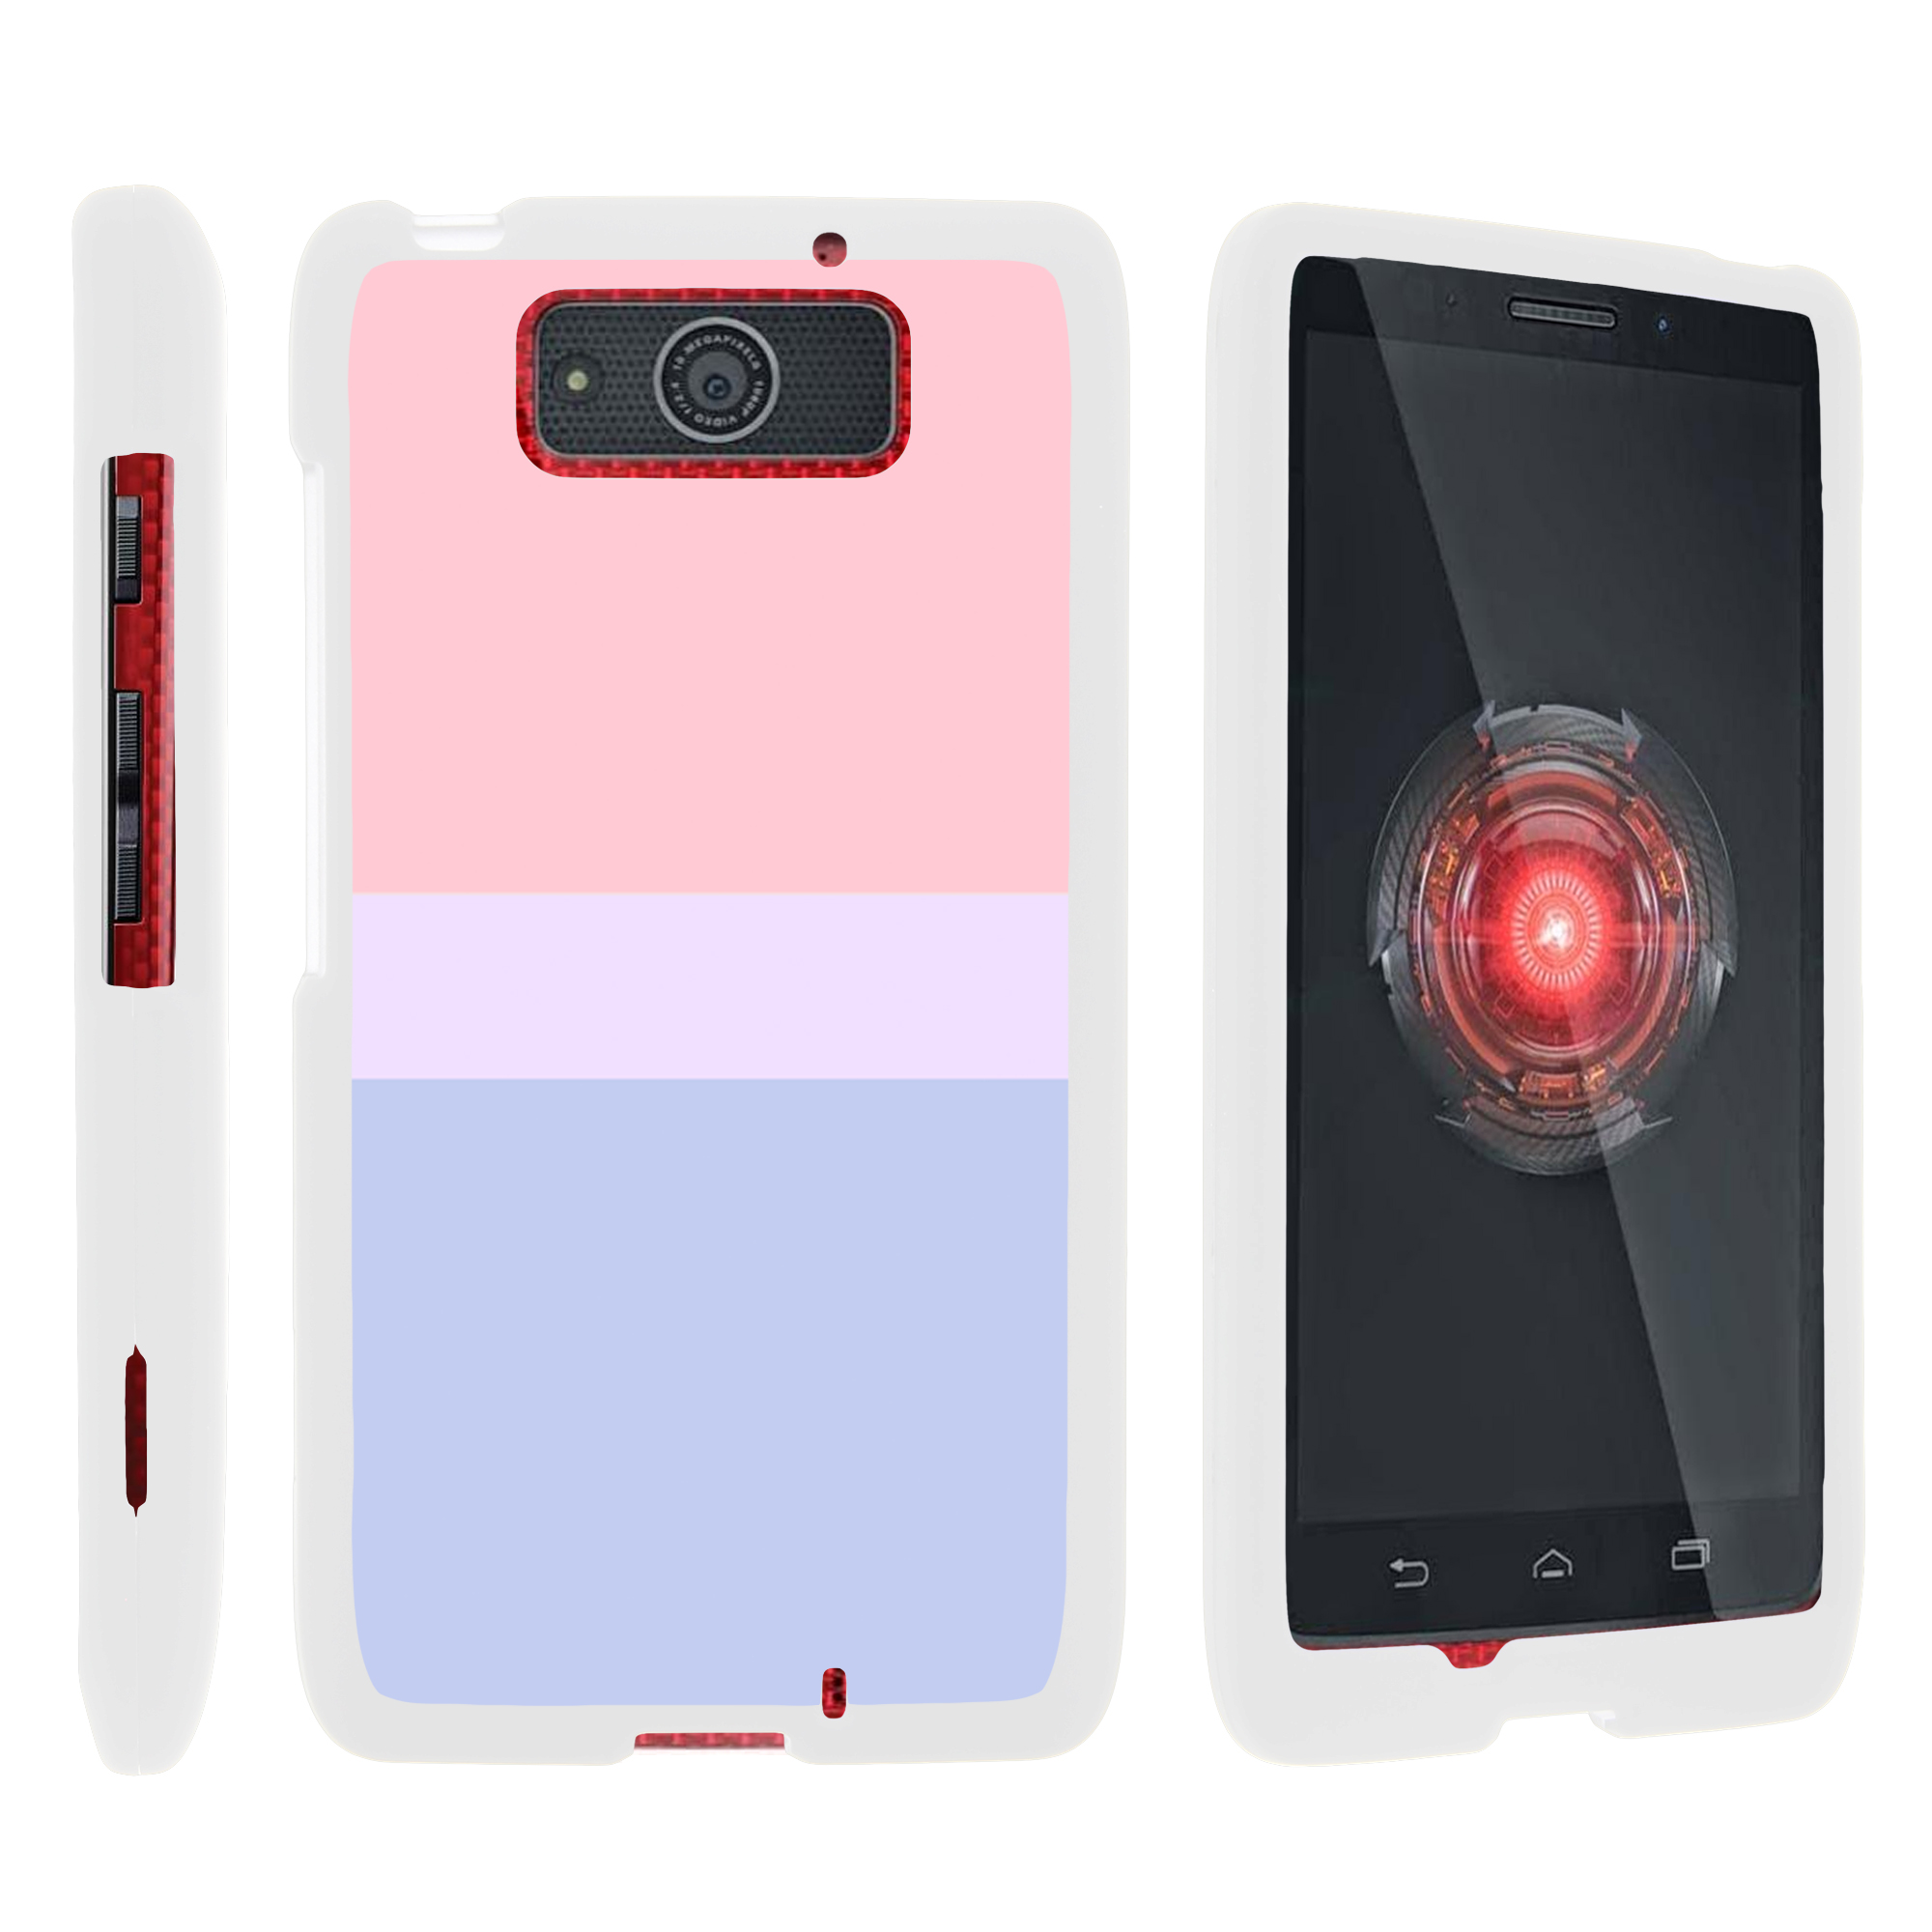 Motorola Droid Ultra XT1080 | Droid Maxx XT1080-M, [SNAP SHELL][White] 2 Piece Snap On Rubberized Hard White Plastic Cell Phone Case with Exclusive Art -  Sunset Pastel